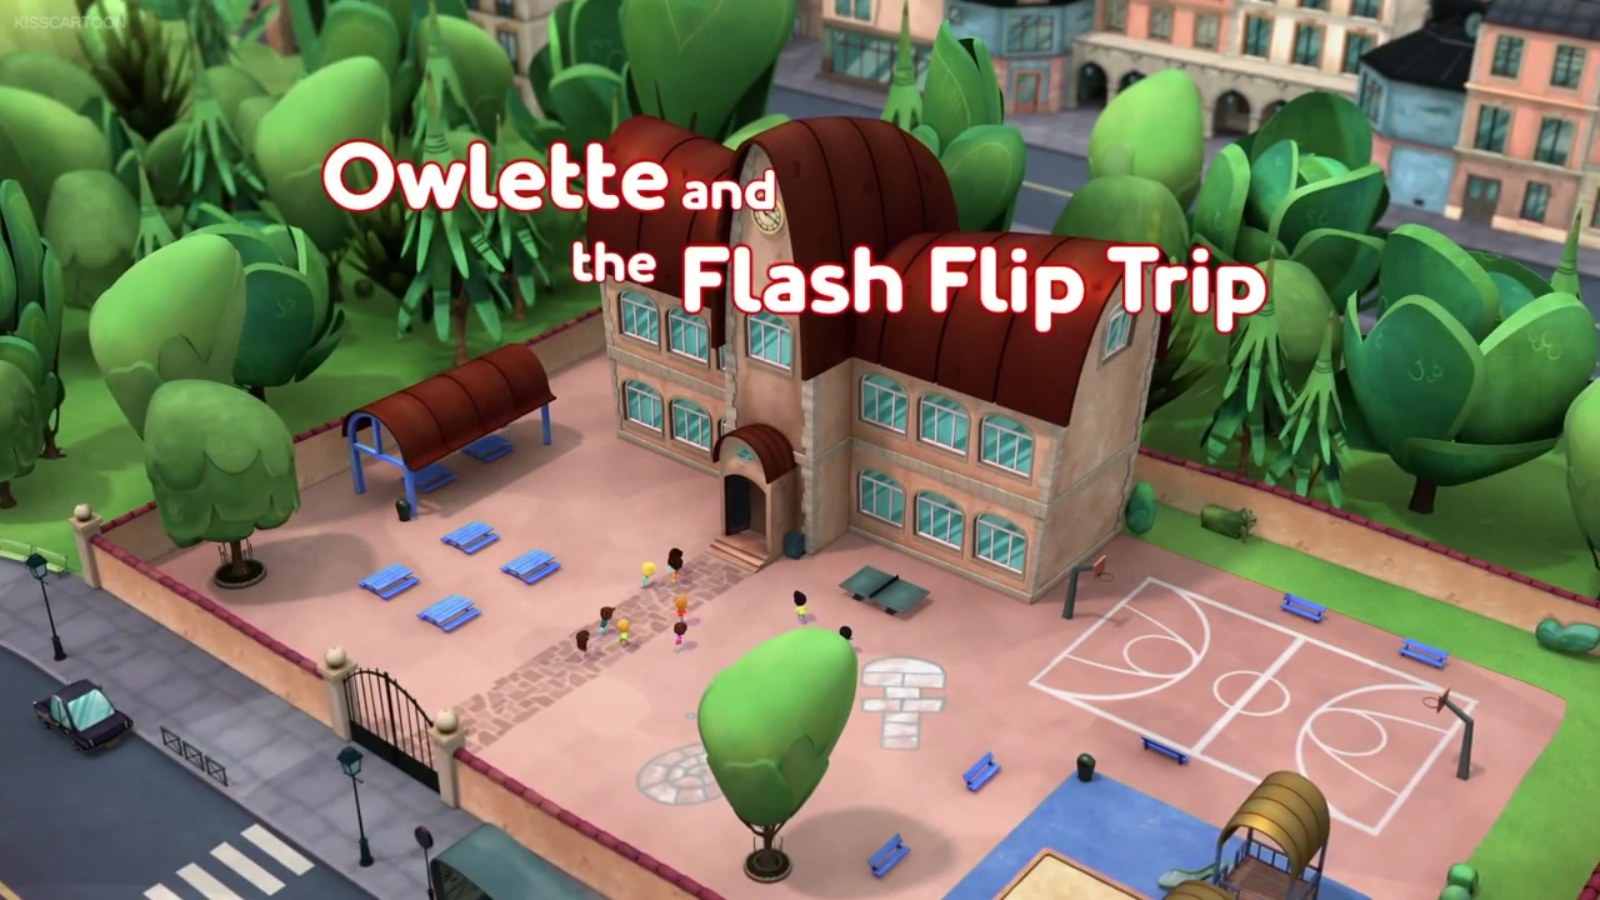 Owlette and the Flash Flip Trip